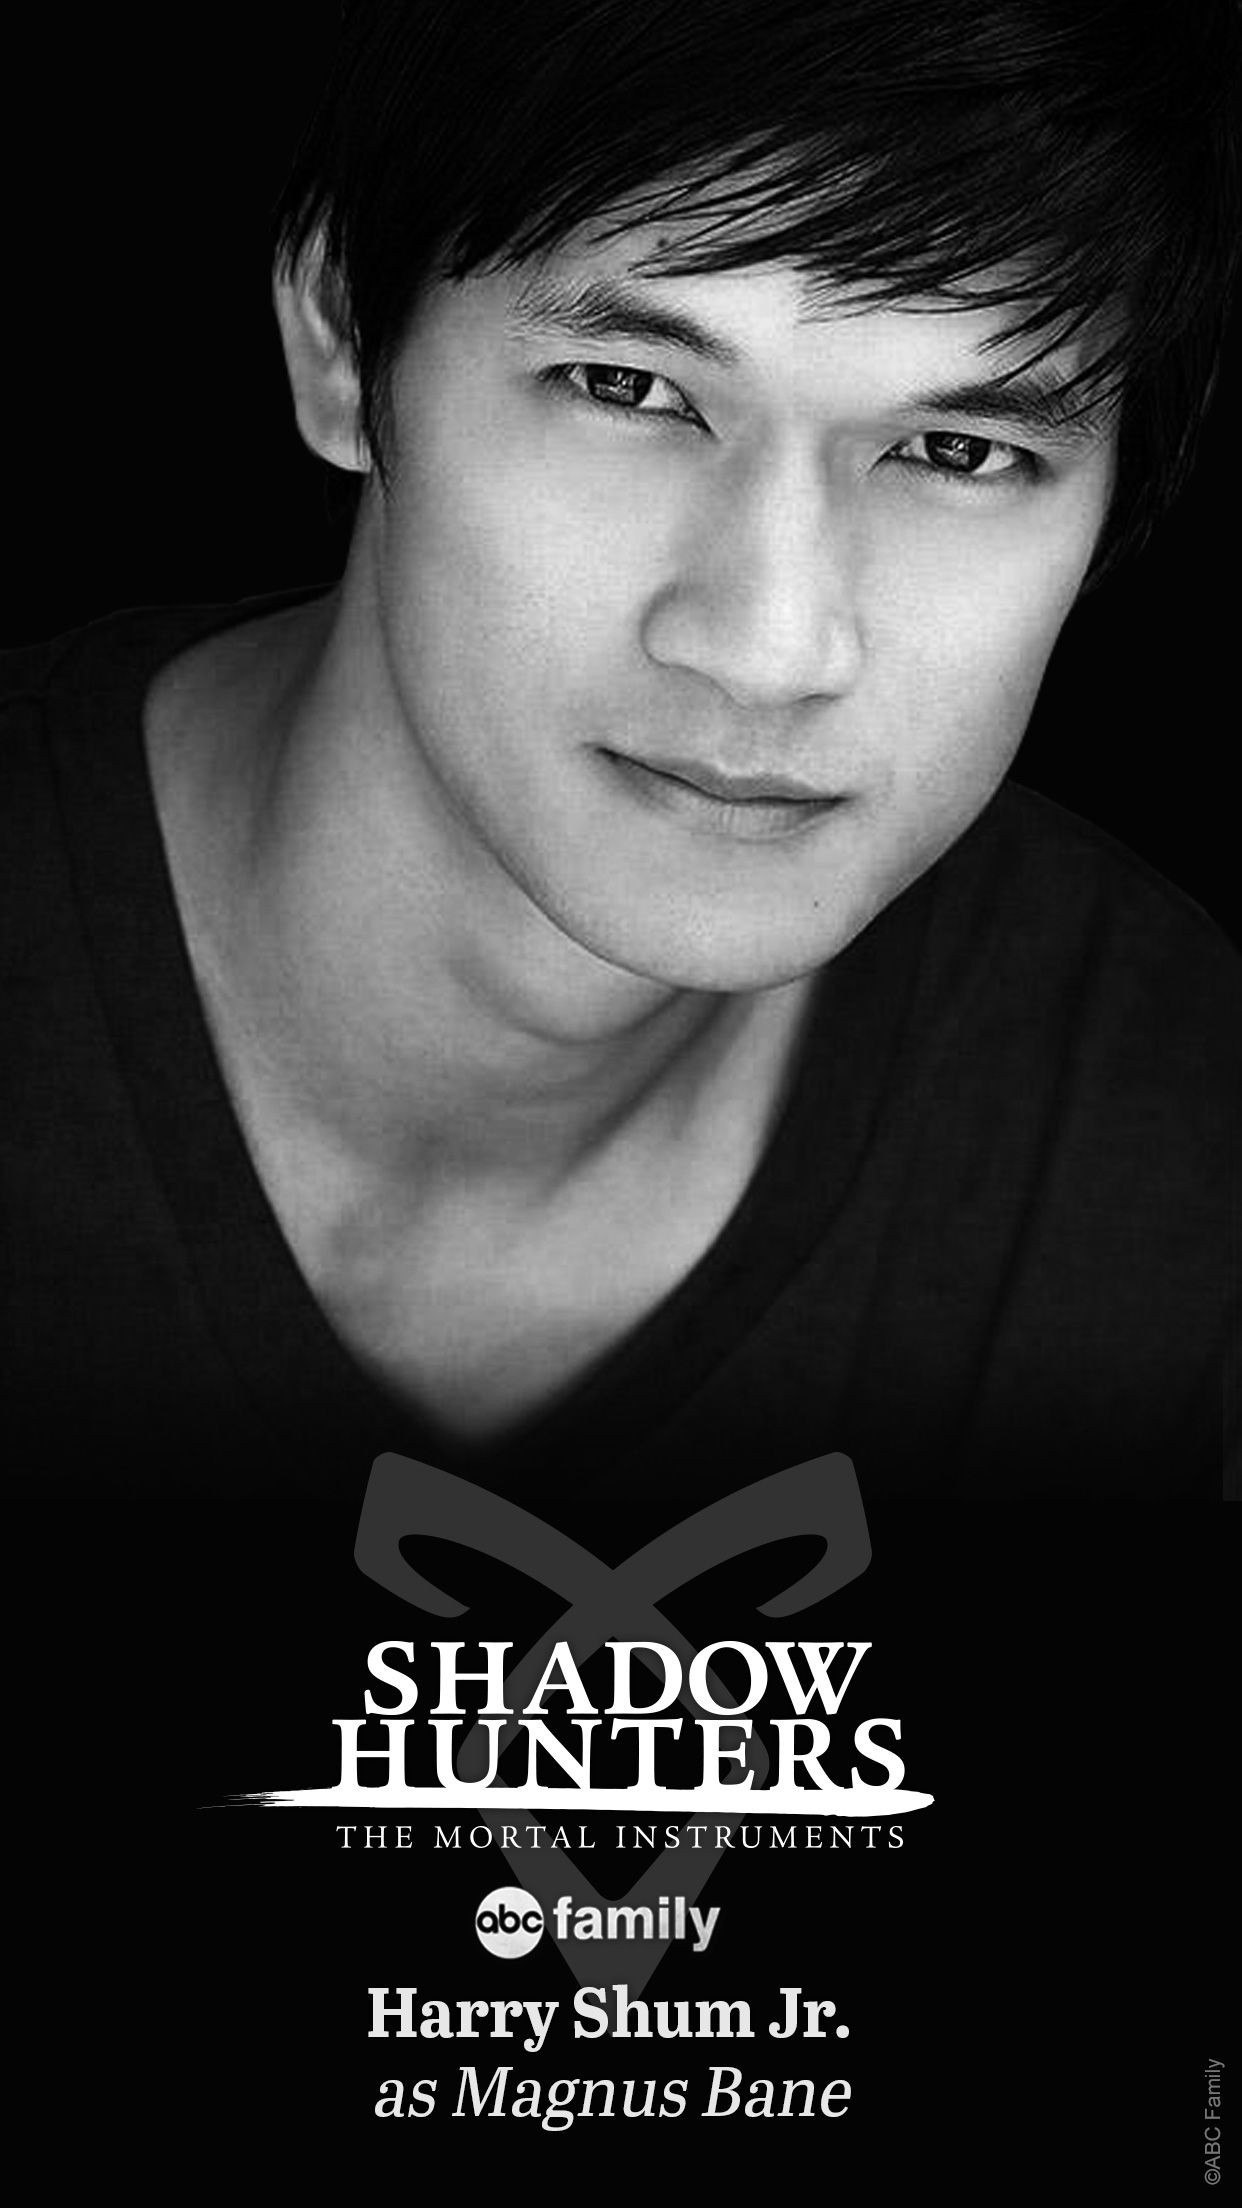 Shadowhunters - Shadowhunters Mobile Backgrounds to Rock Your World - 1007